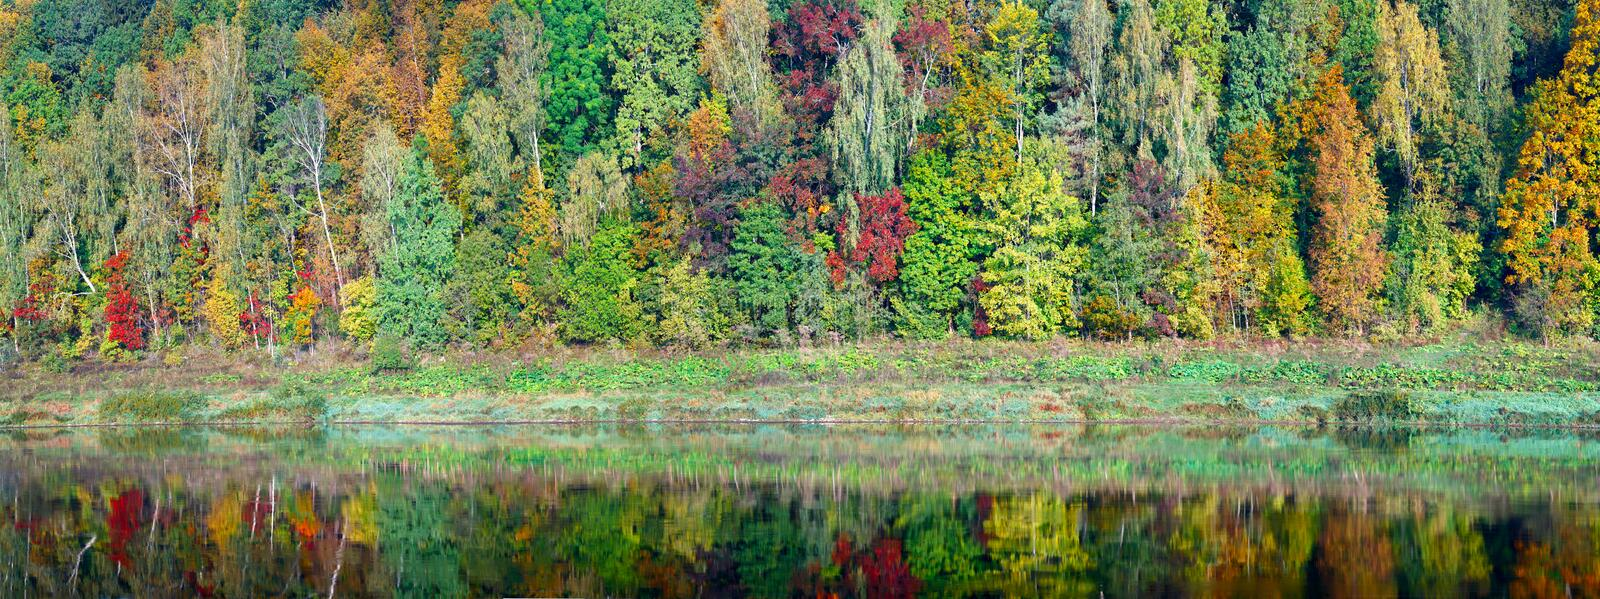 Beautiful orange, red and green autumn forest, many trees on the orange hills panorama reflection on water. Autumn background long stock photos